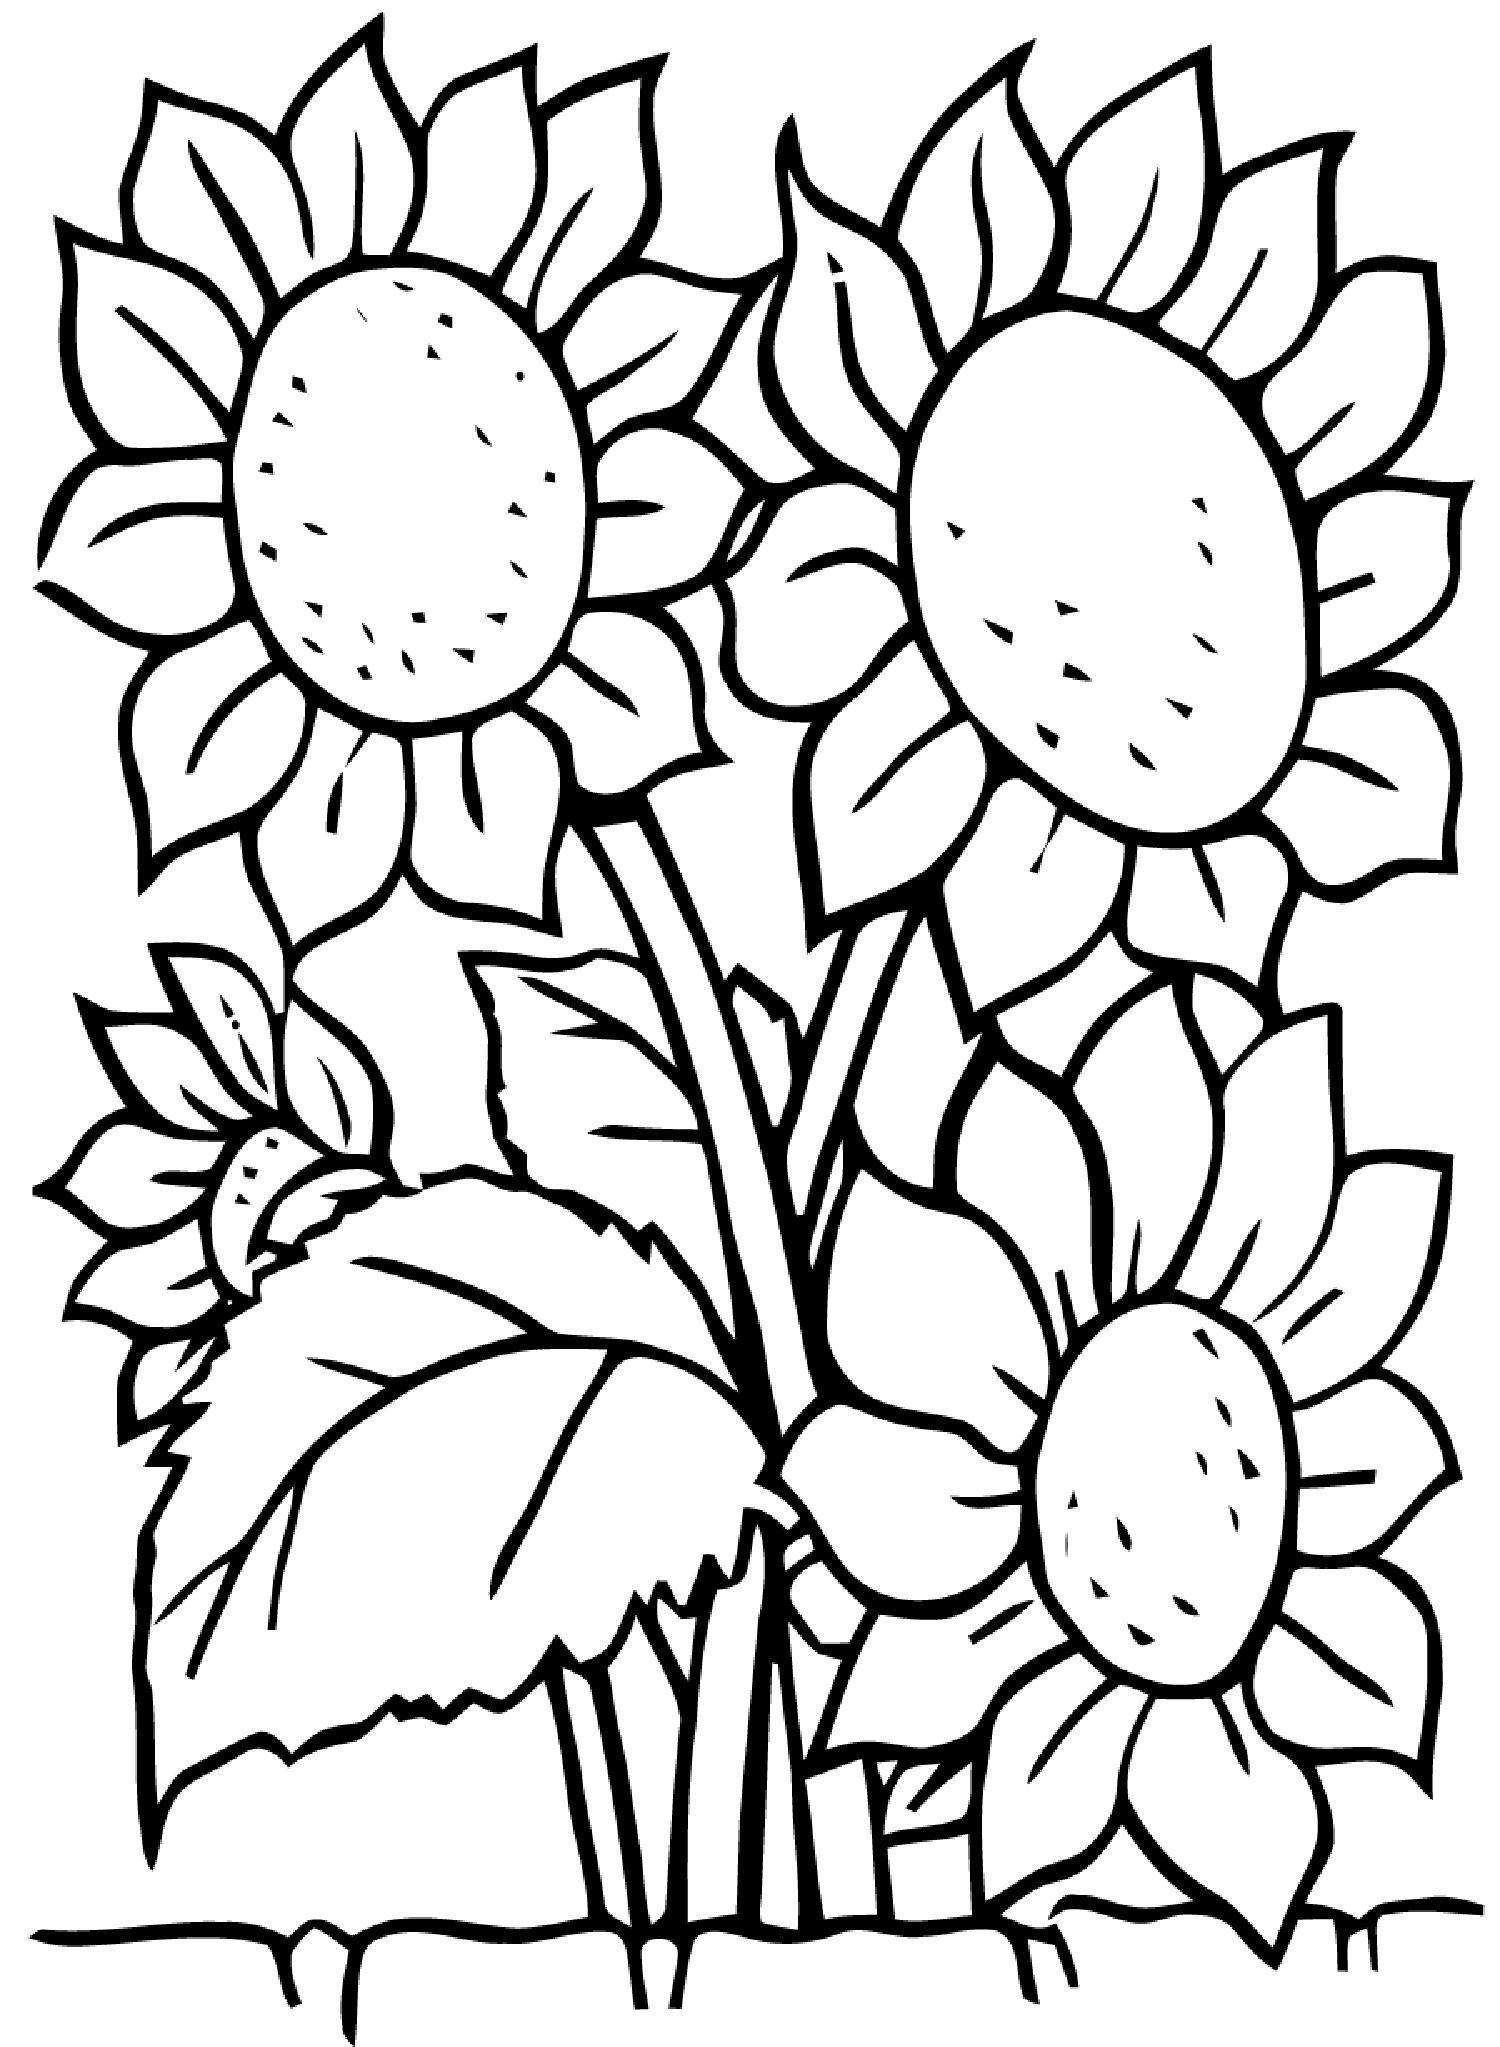 Sunflowers Flowers Coloring Pages For Kids To Print & Color